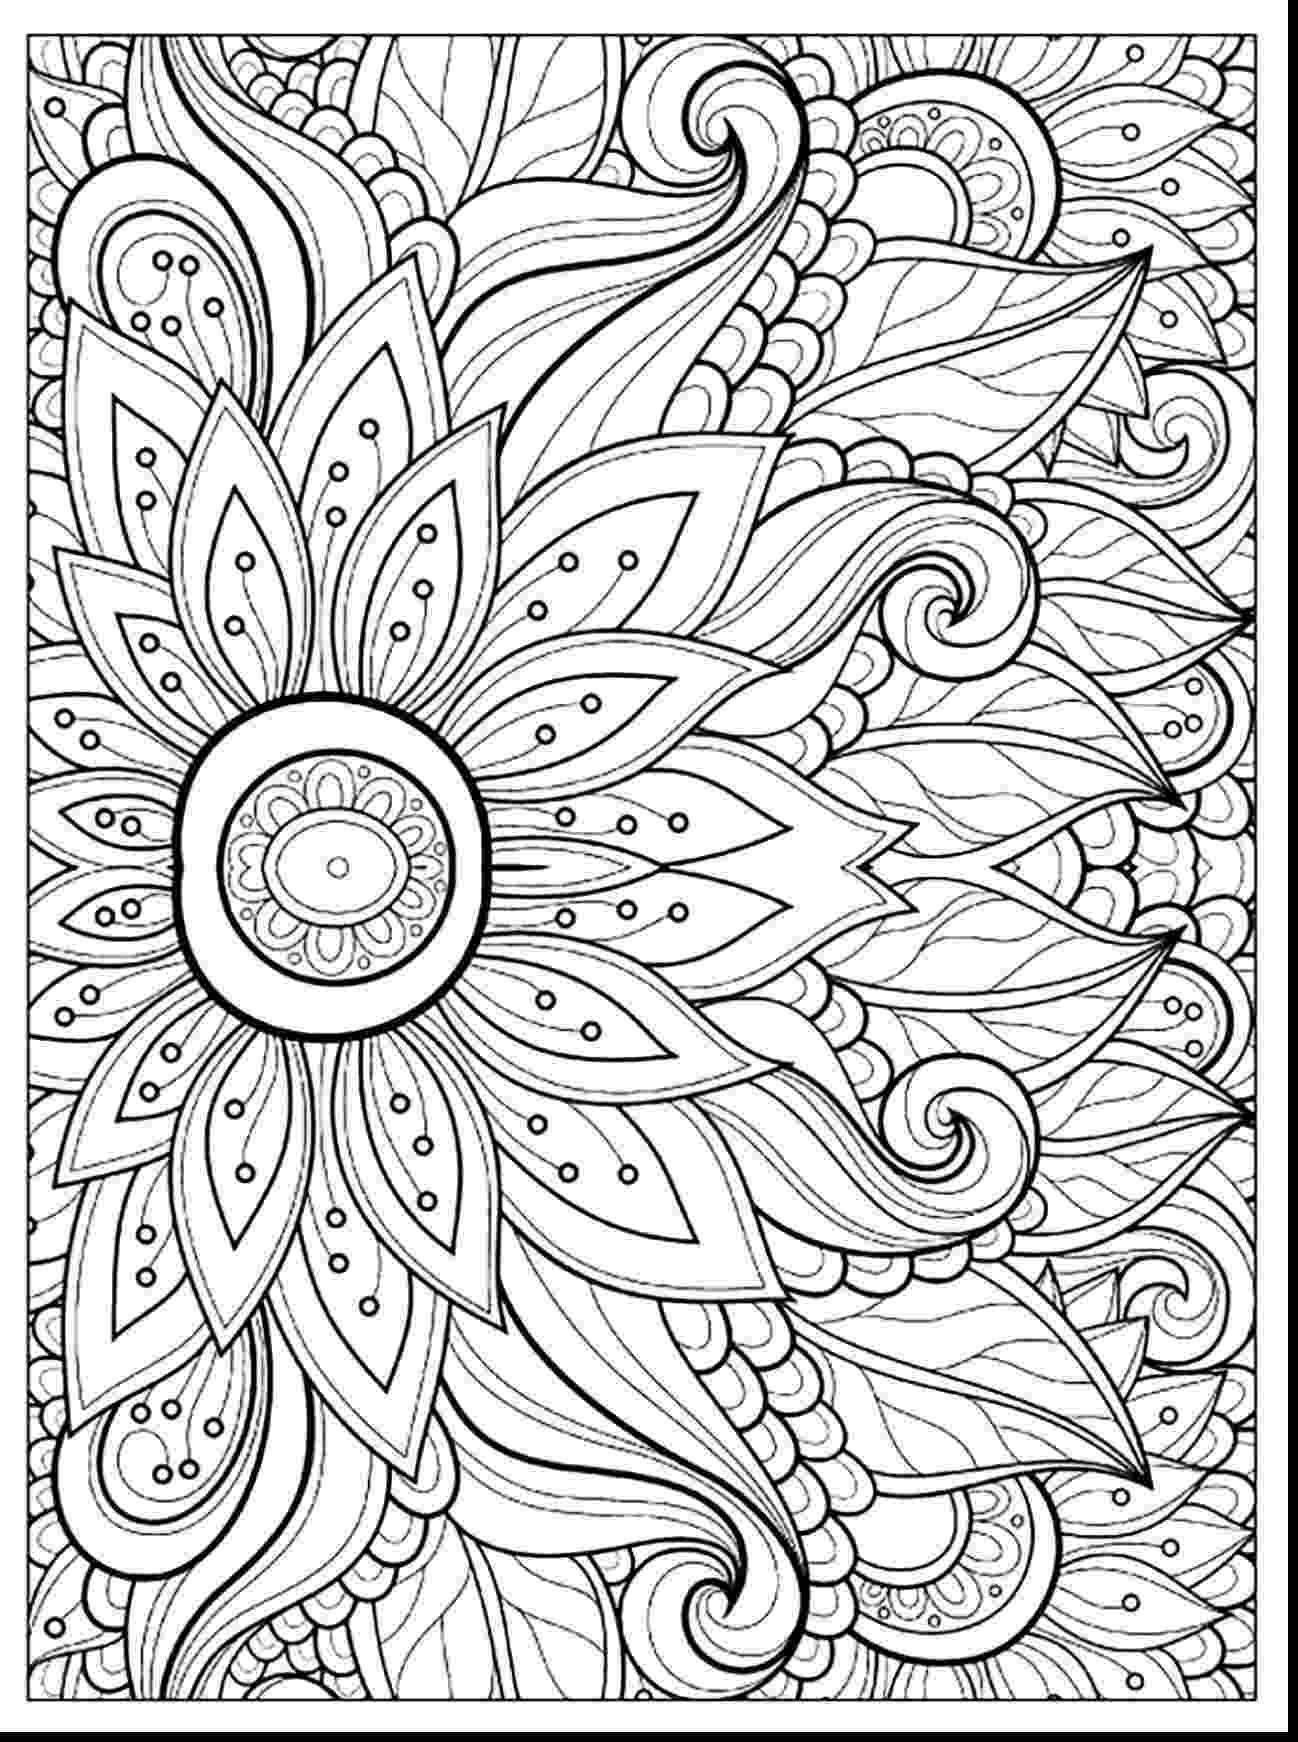 mindfulness colouring pages mindfulness coloring pages at getcoloringscom free pages mindfulness colouring